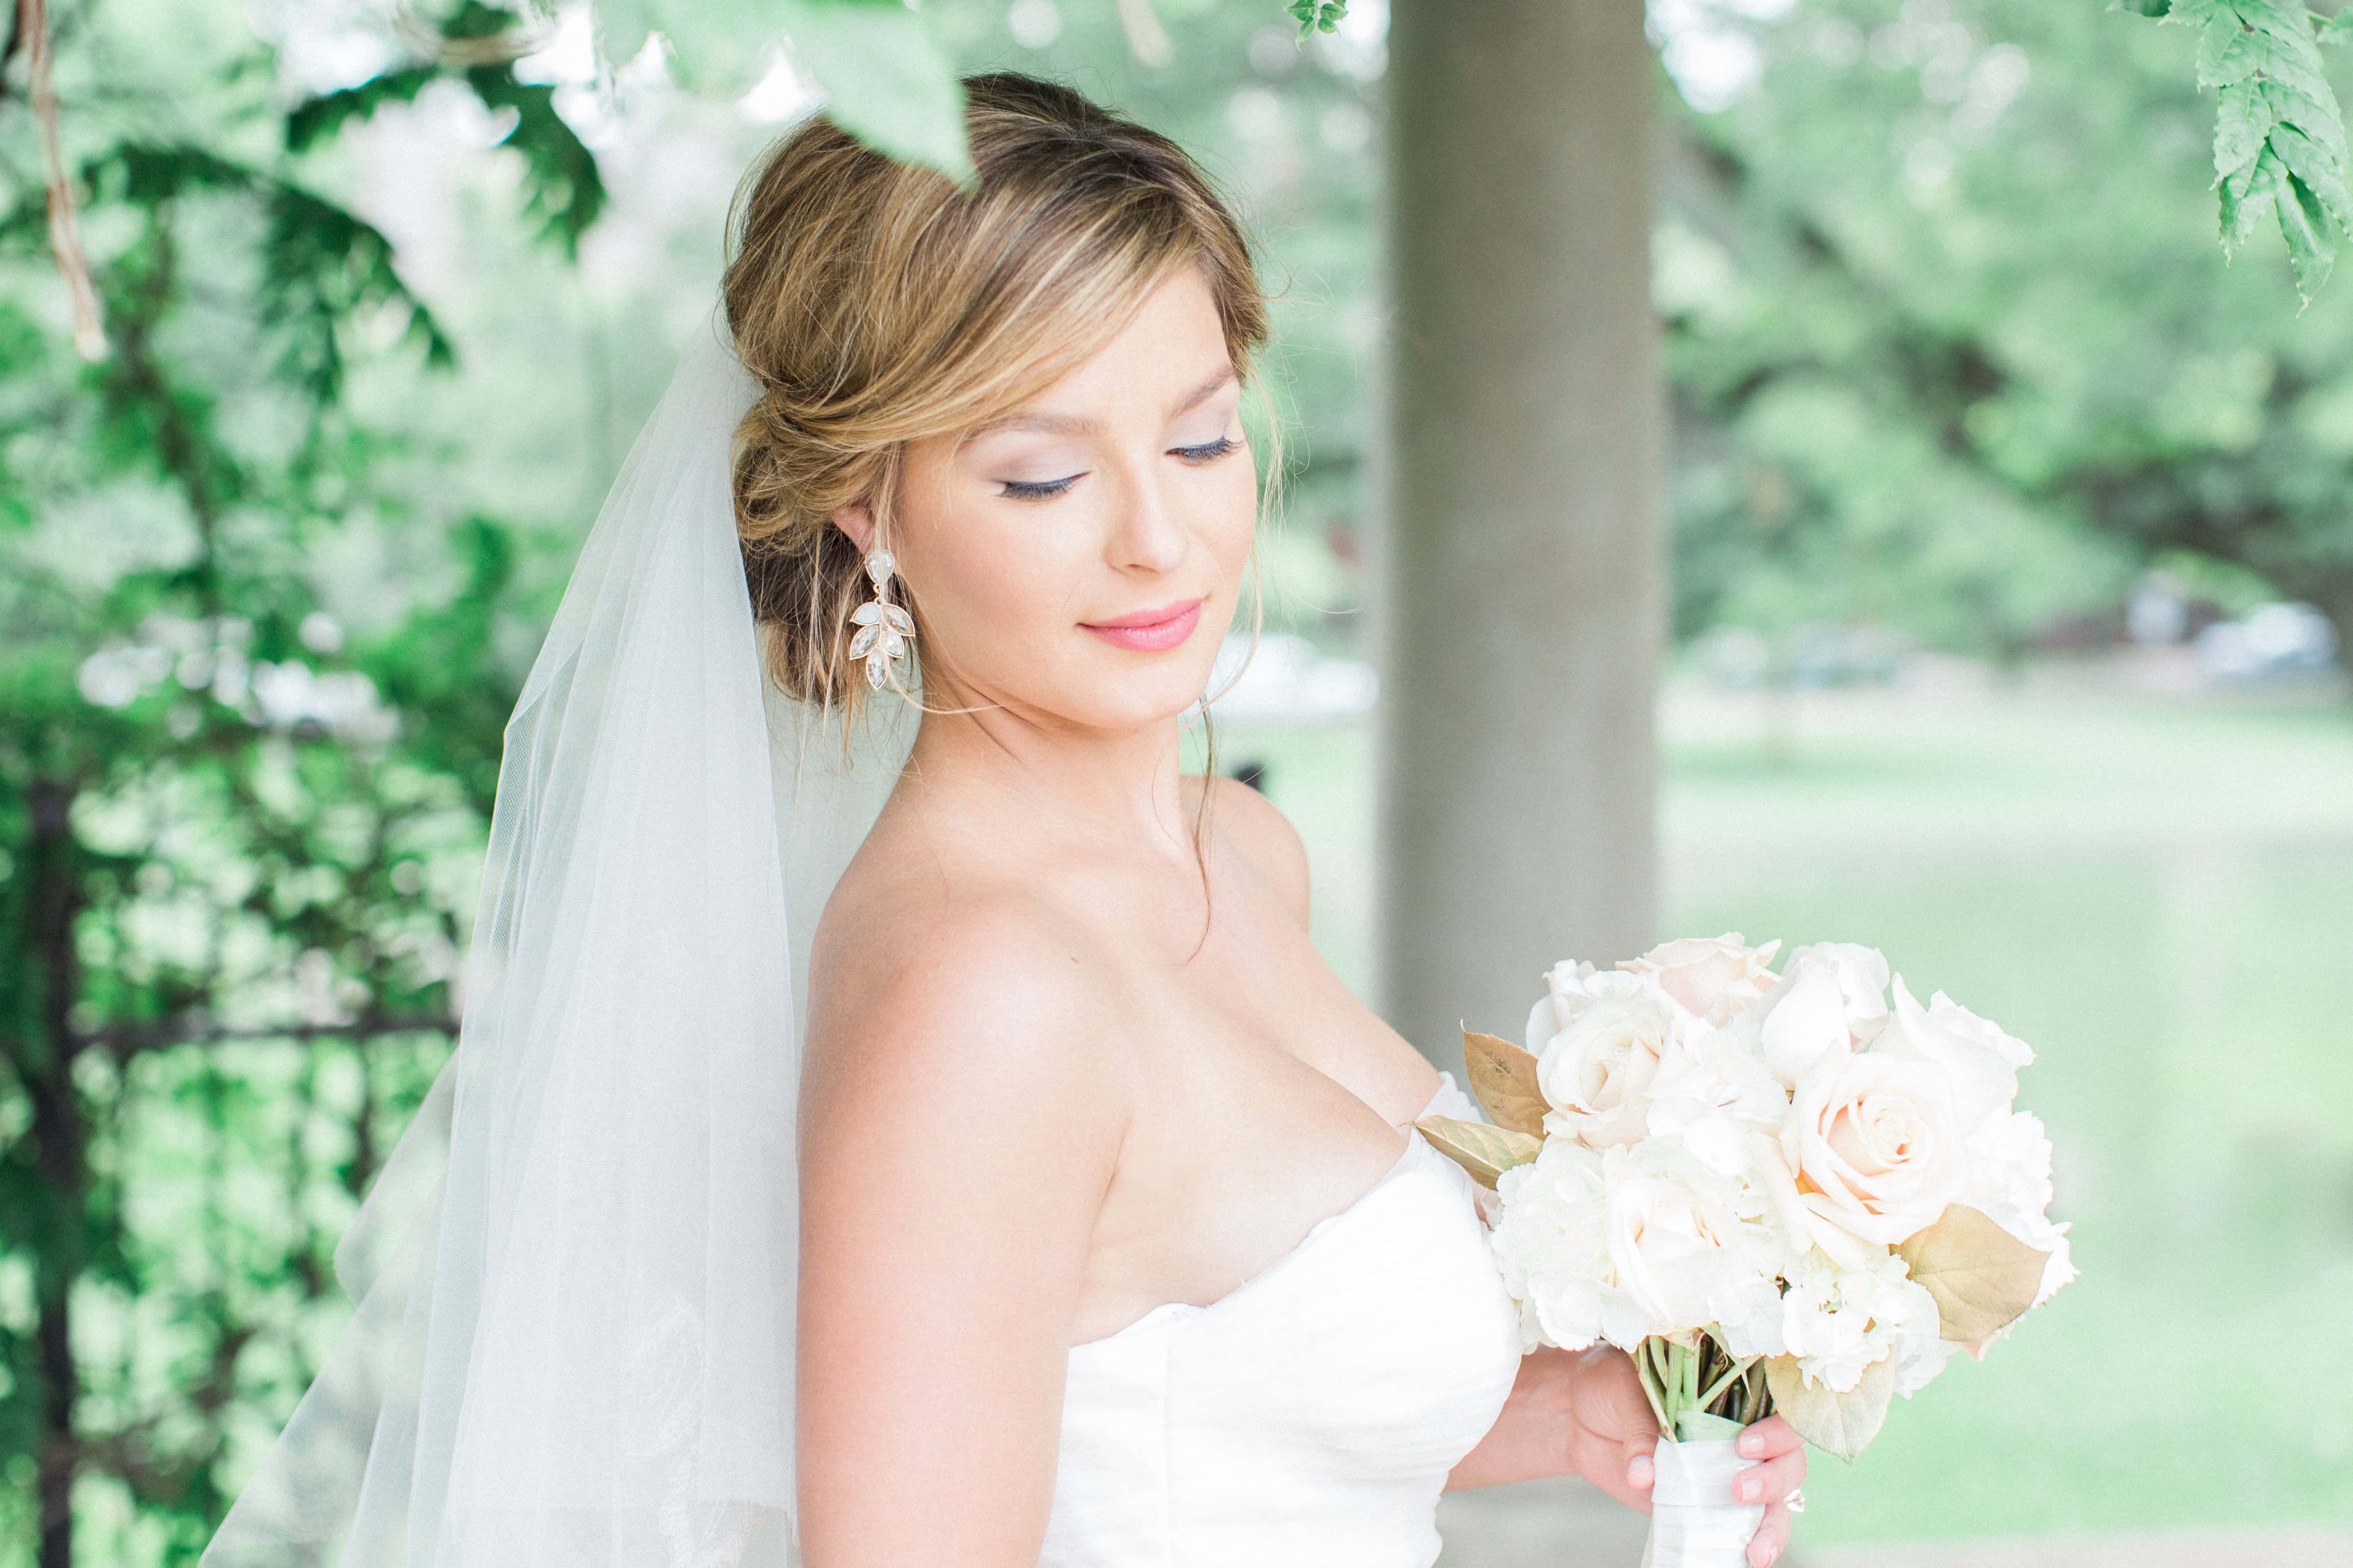 Bridal portraits under an arbor